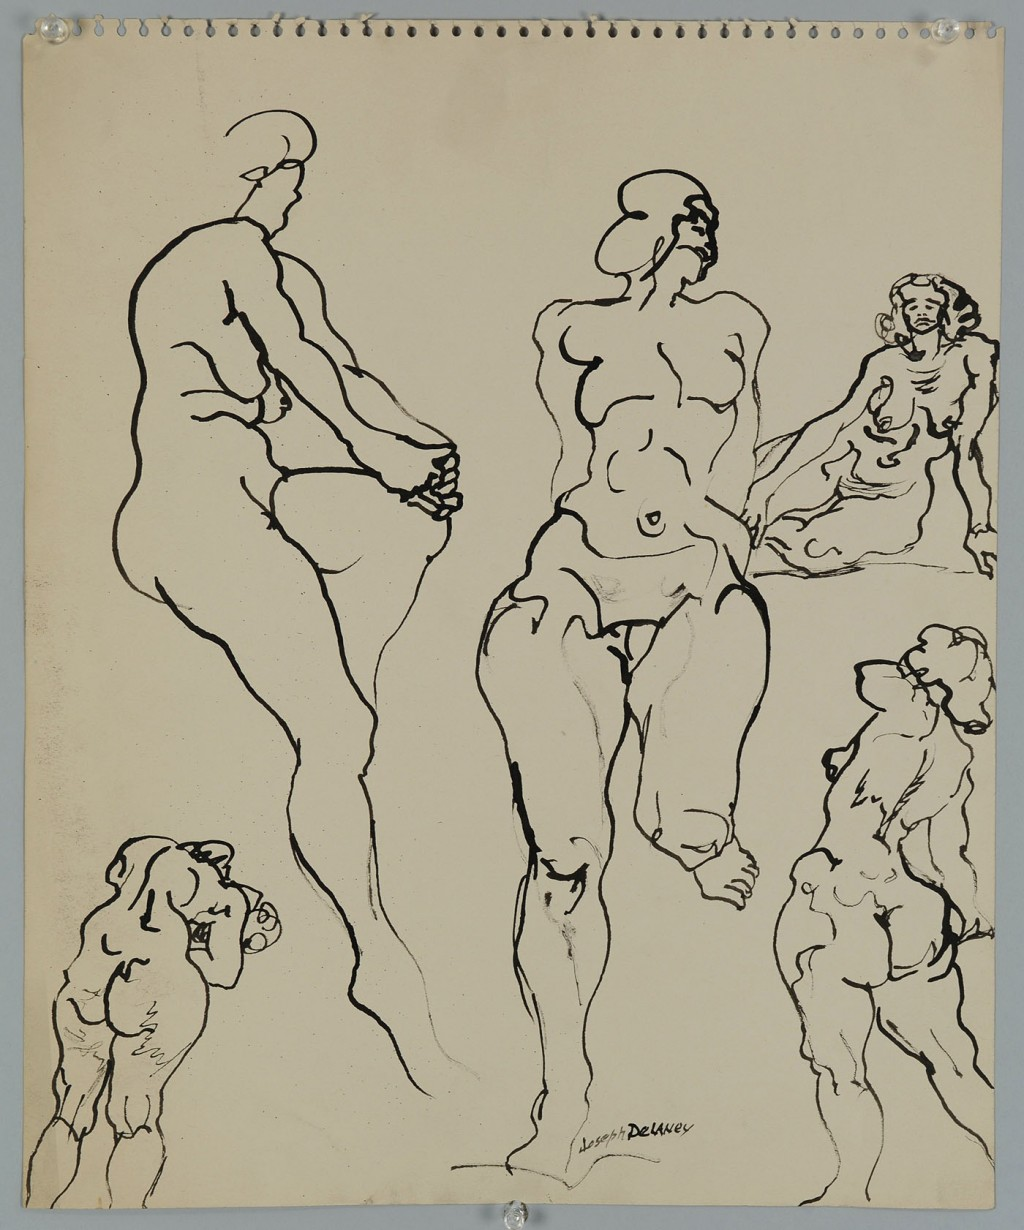 Lot 184: Signed Joseph Delaney Ink Drawing, multiple nudes